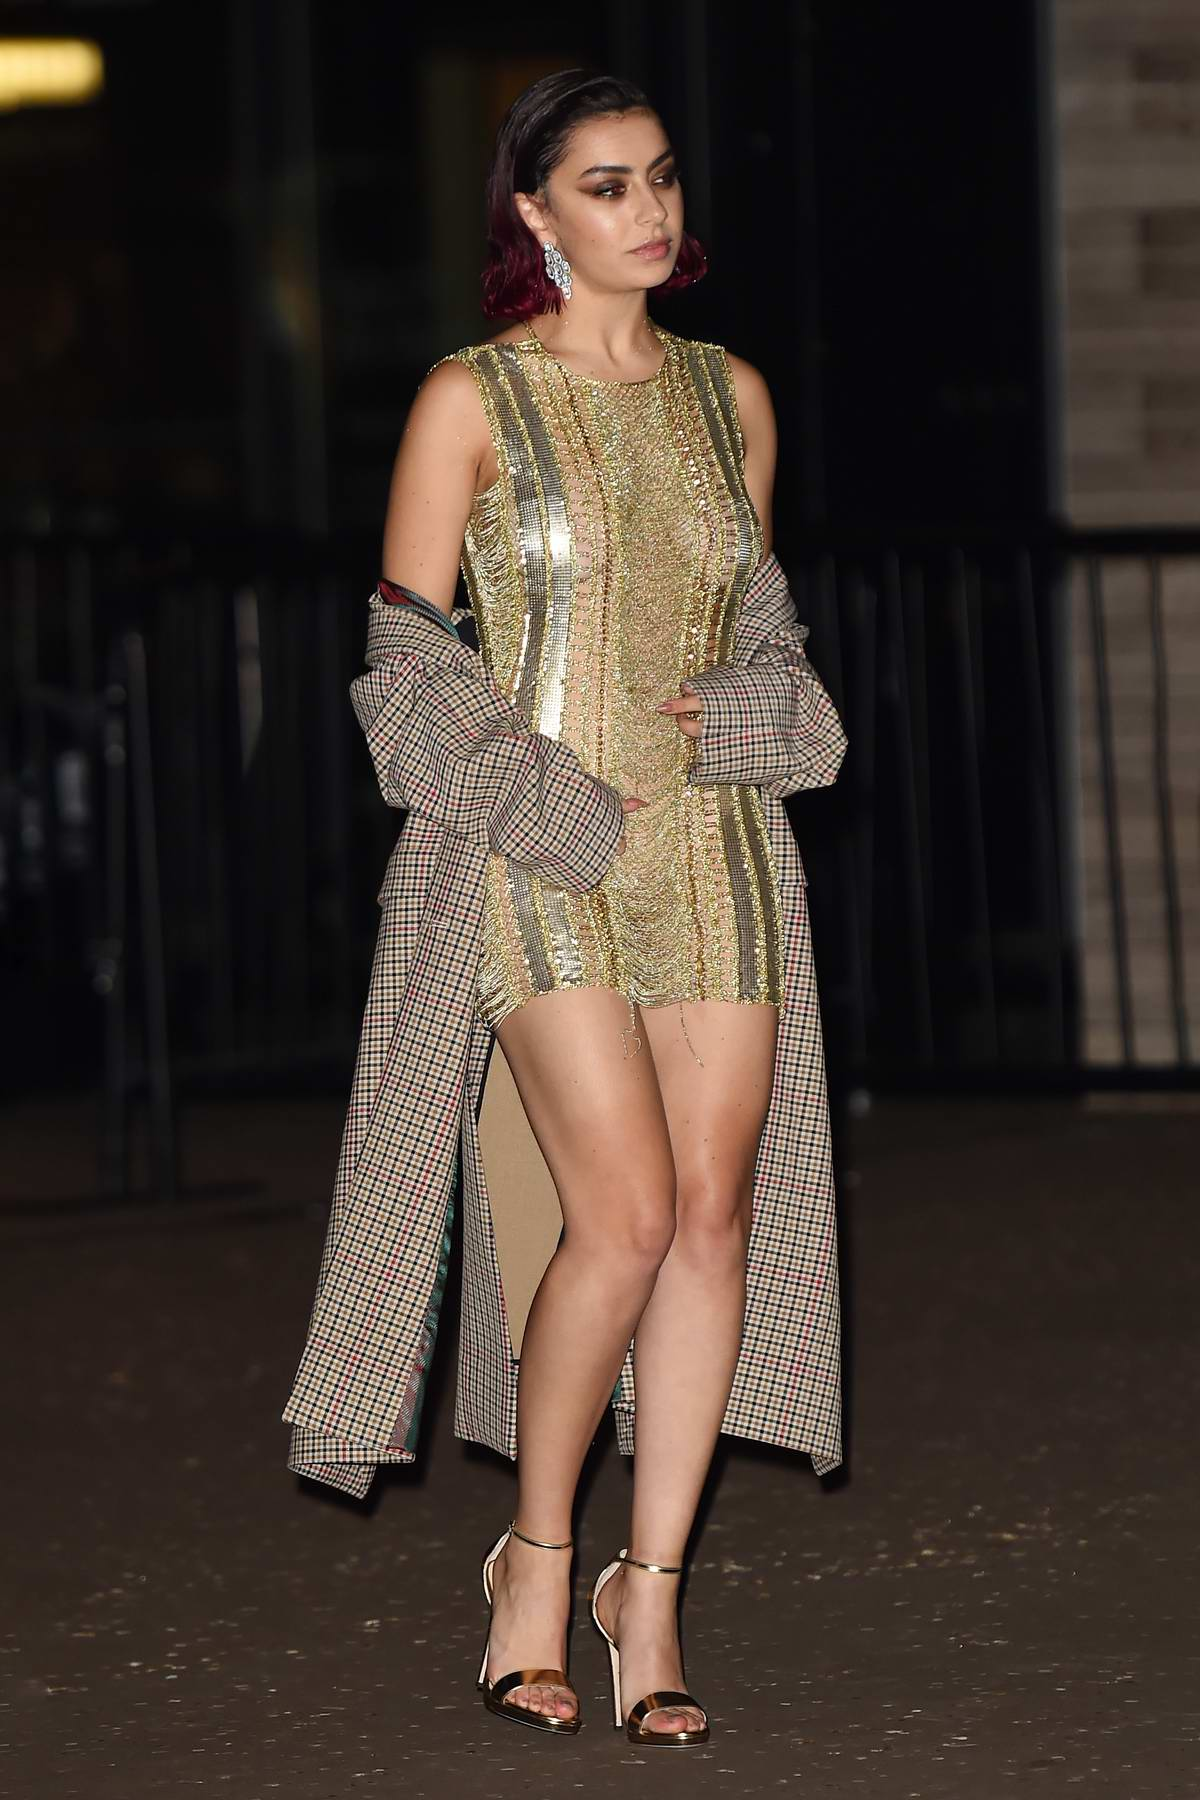 Charli XCX attends the 2019 GQ Men of the Year Awards after party at Freud's in London, UK